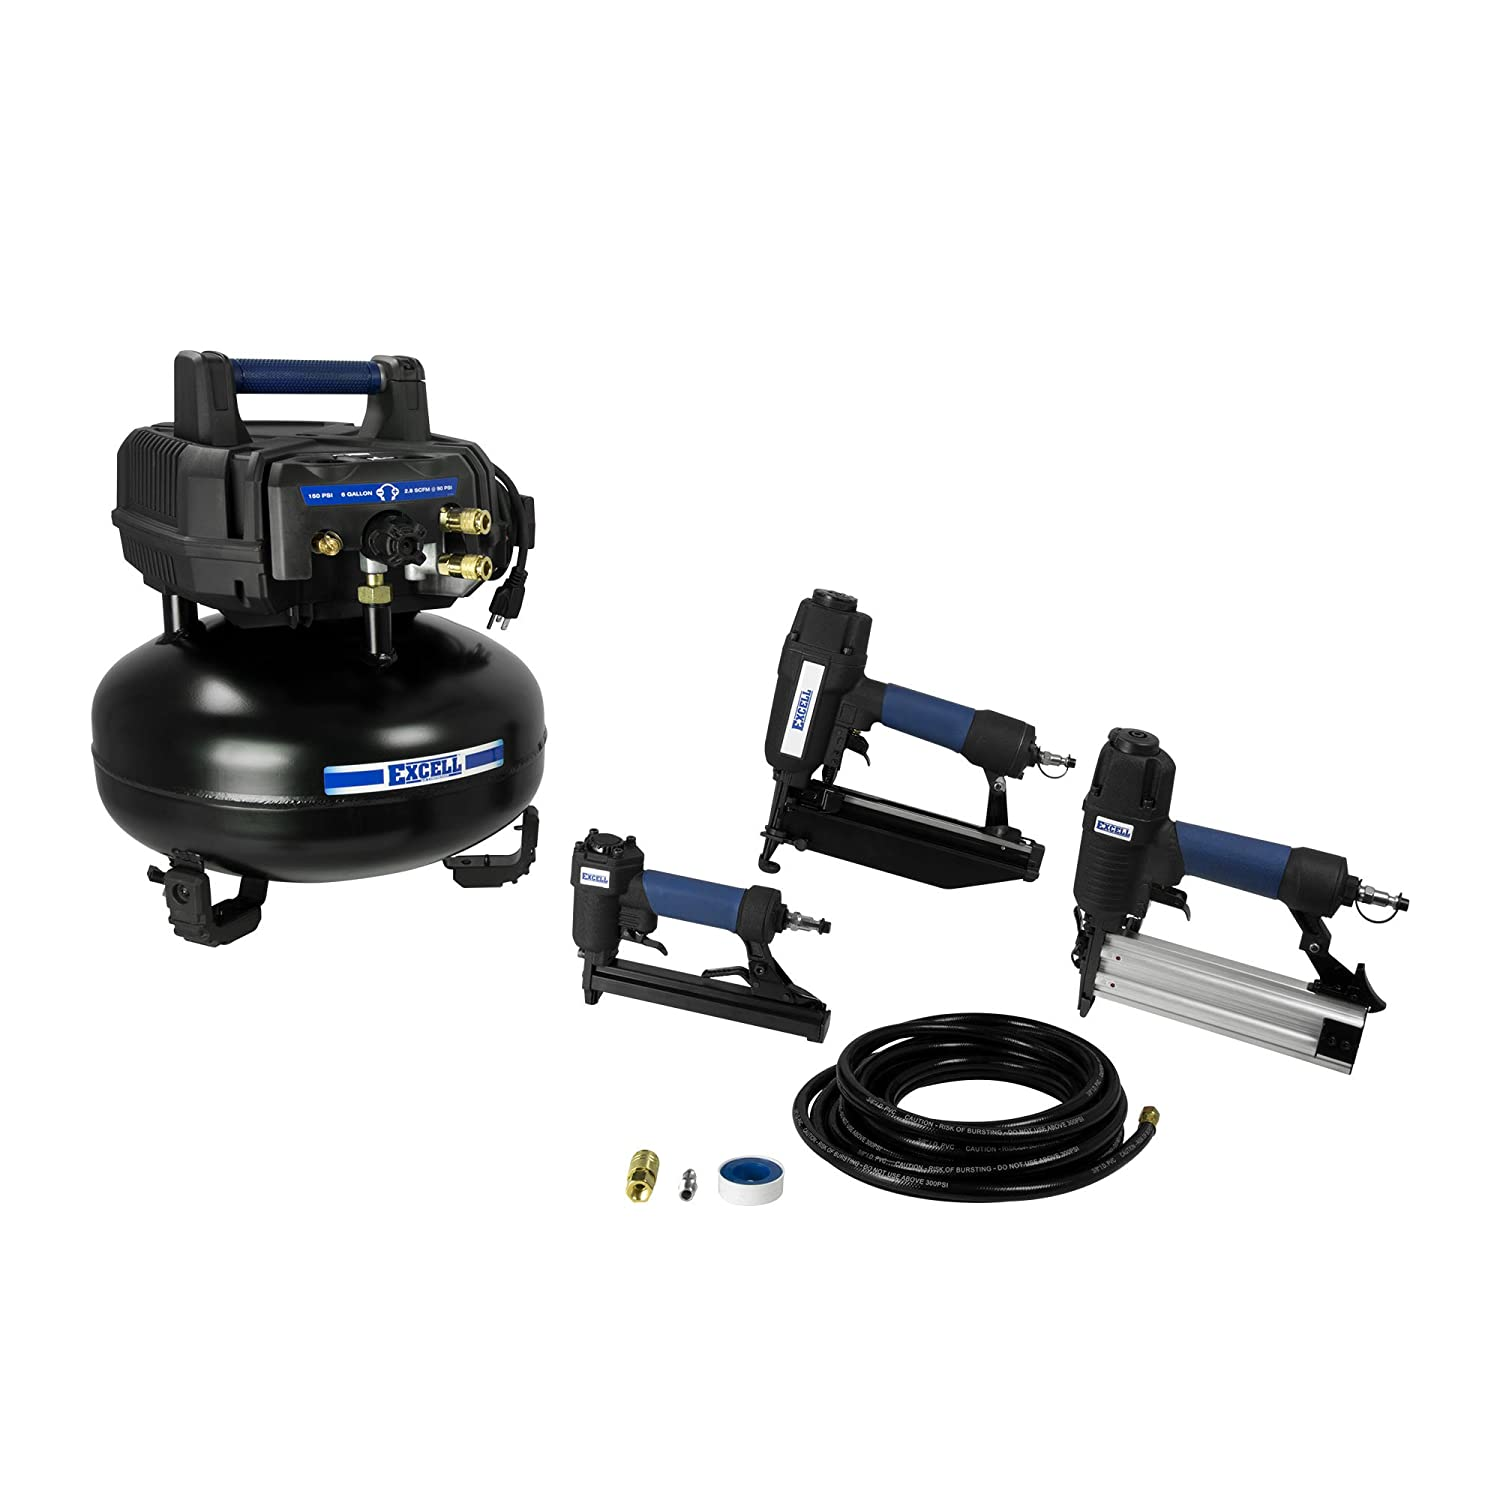 Excell U256PPCKE Compressor and 3-Nailer Combo Kit EXCELL Air Compressors